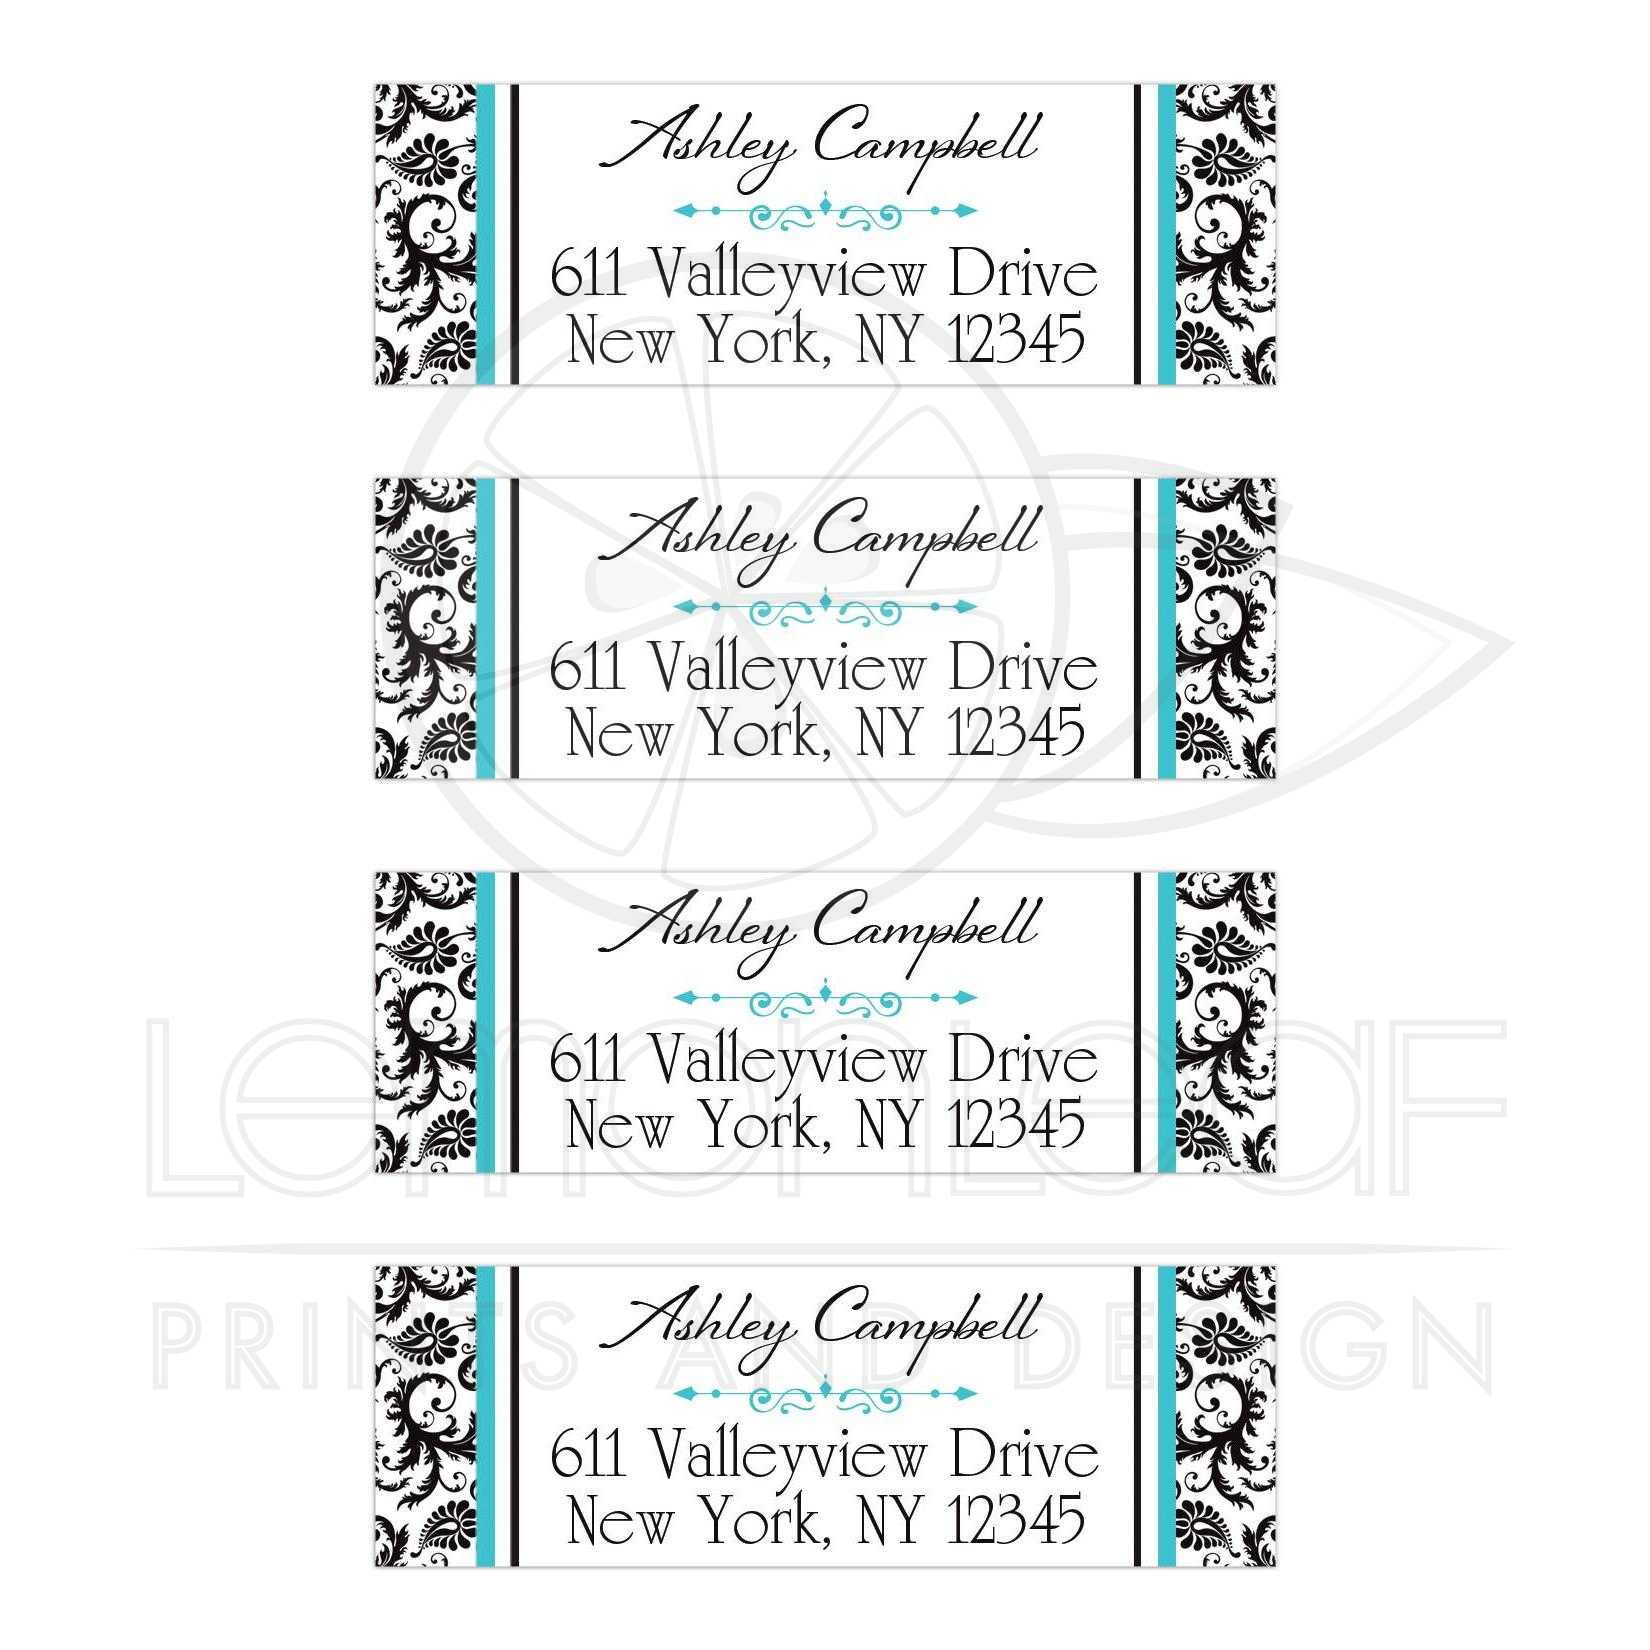 personalized address labels black white floral damask aqua blue